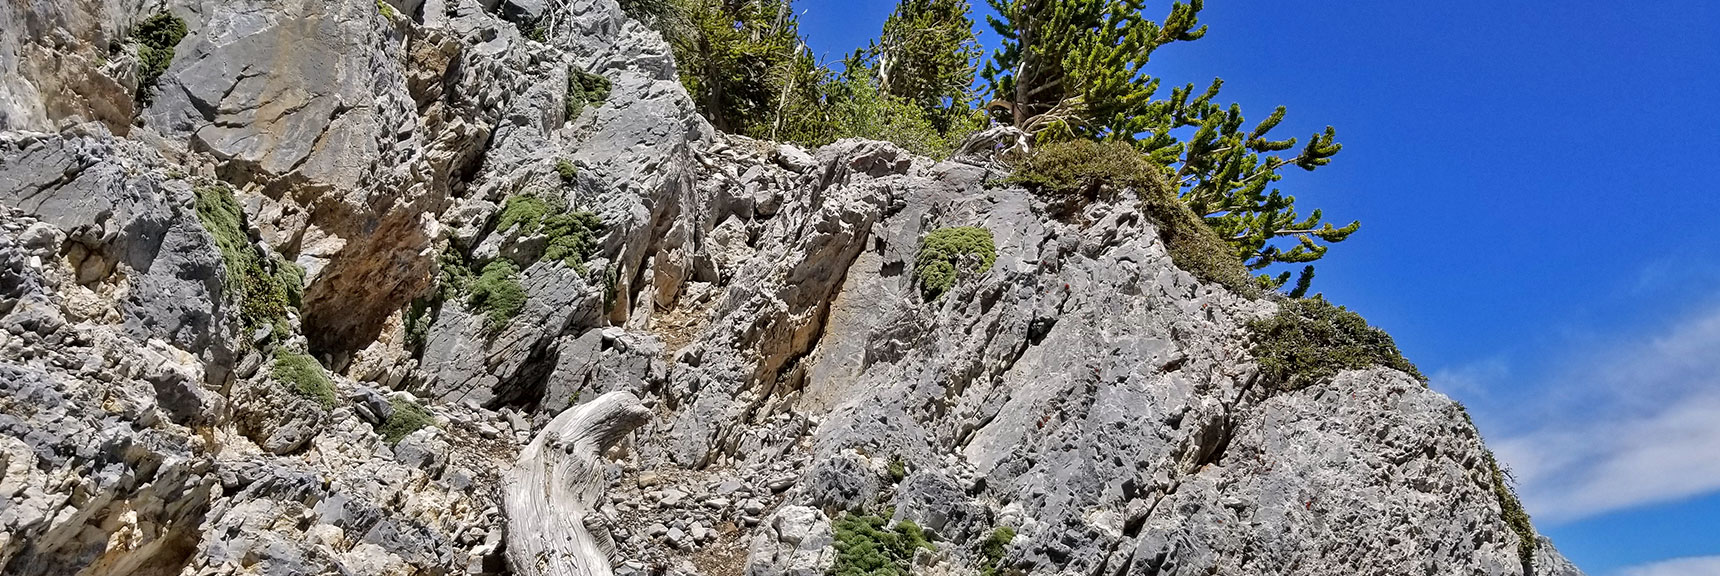 Point Where You Take a Right, Leave the Canyon and Ascend Avalanche Slopes to the Summit   Mummy Mountain Nevada Northeast Approach